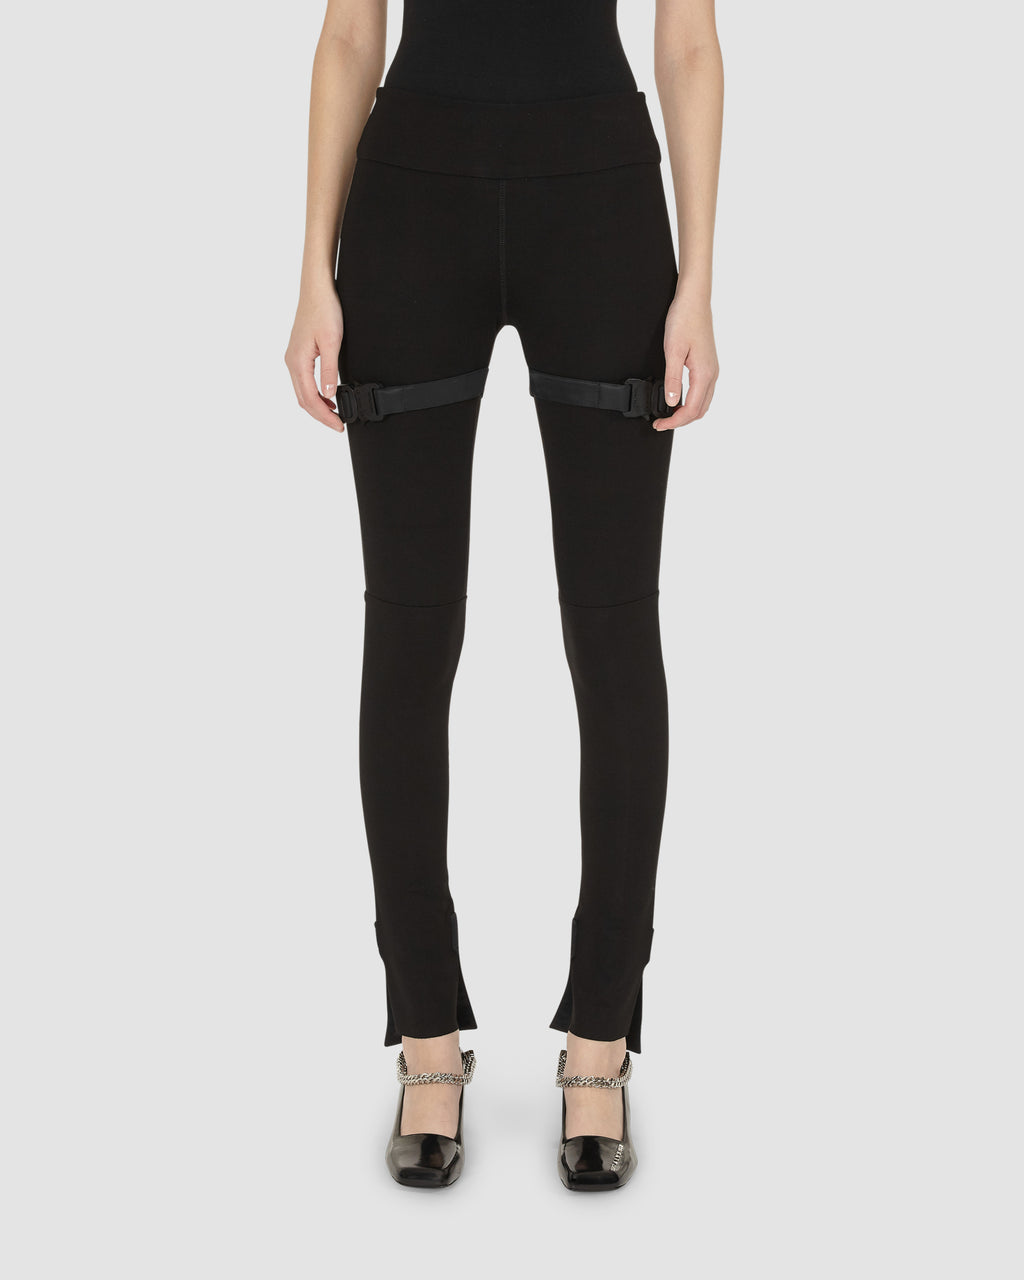 1017 ALYX 9SM | BLACK LEGGINGS | Pants | BLACK, Google Shopping, Pants, S20, S20 Drop II, Trousers, Woman, WOMEN